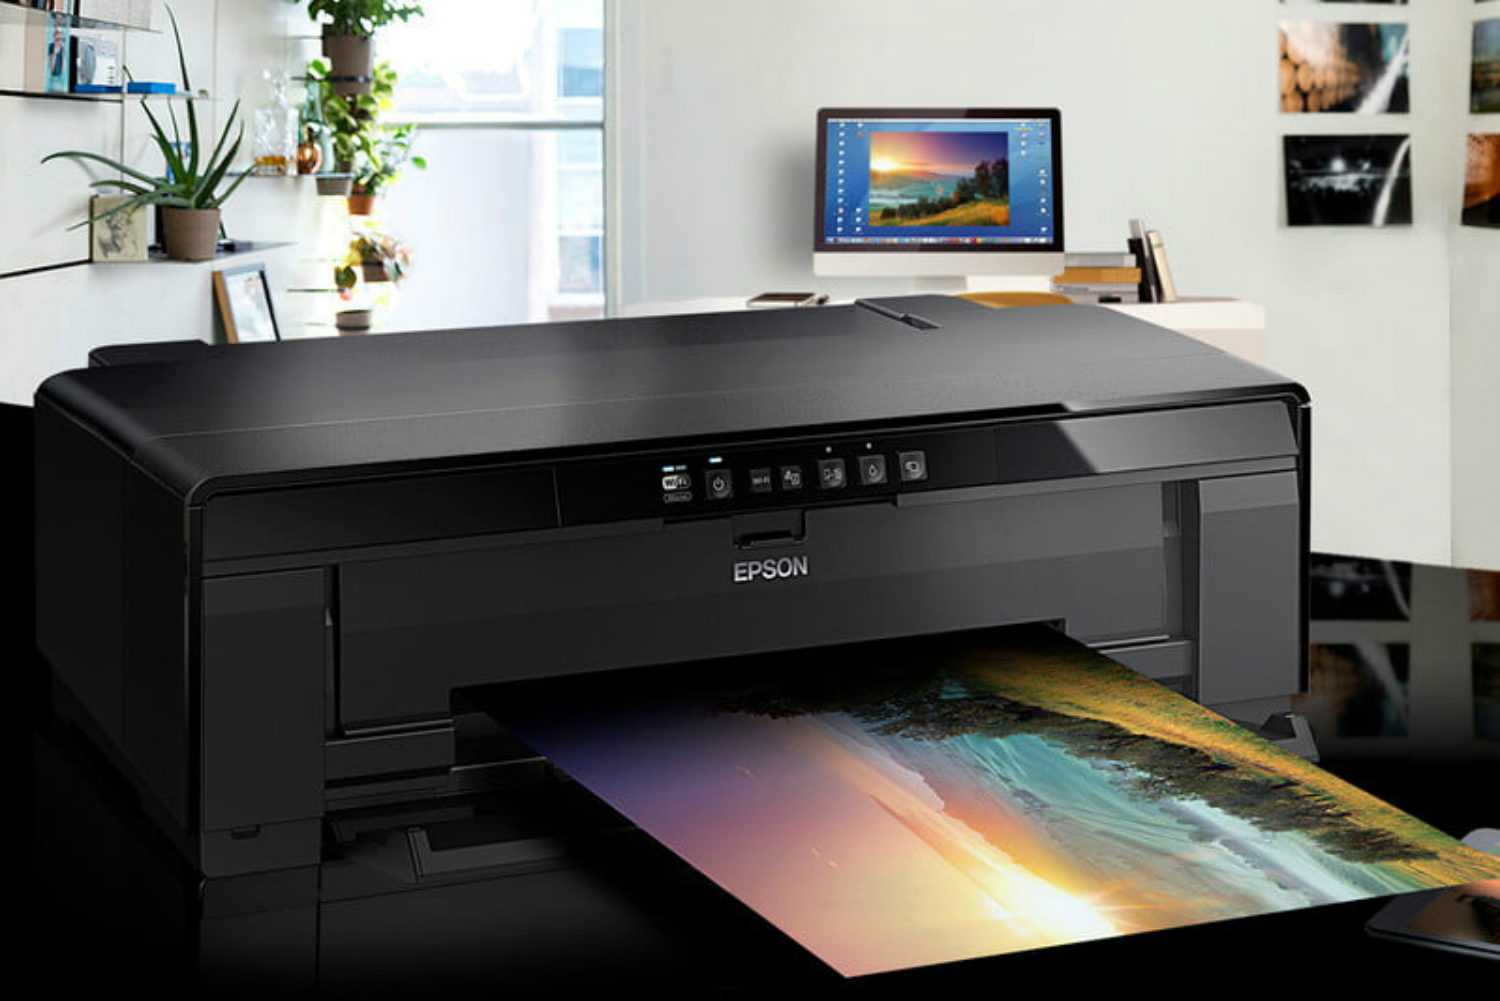 printers for sale near me